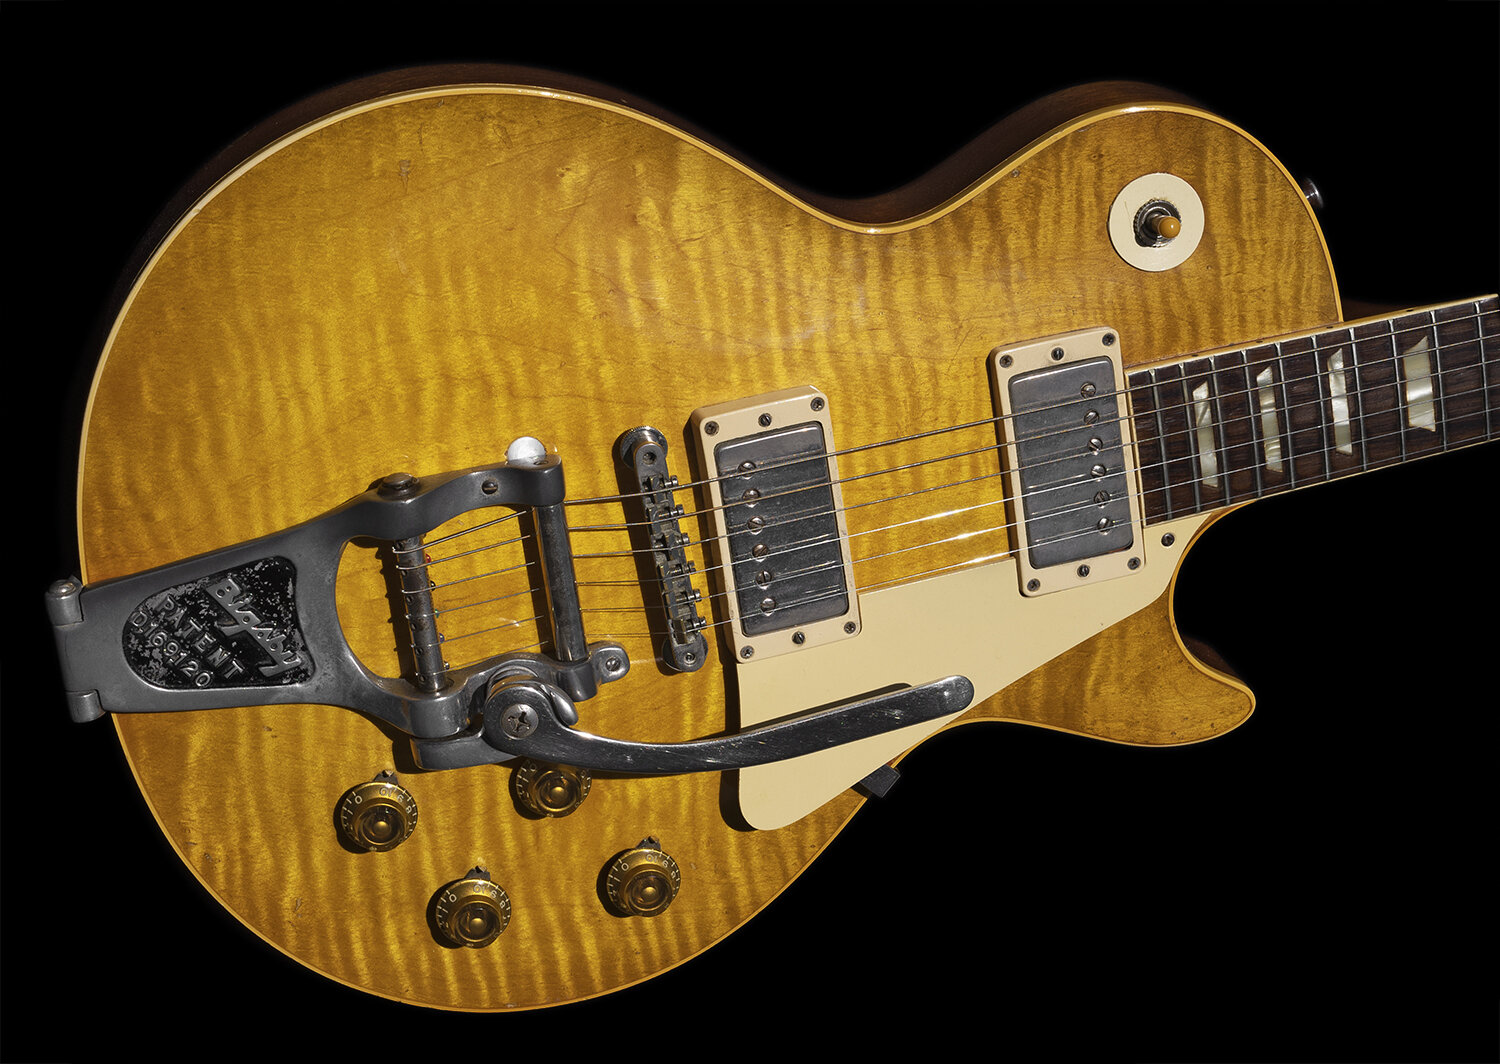 1959 Les Paul Standard, Cherry Sunburst, Factory Installed Bigsby (faded)